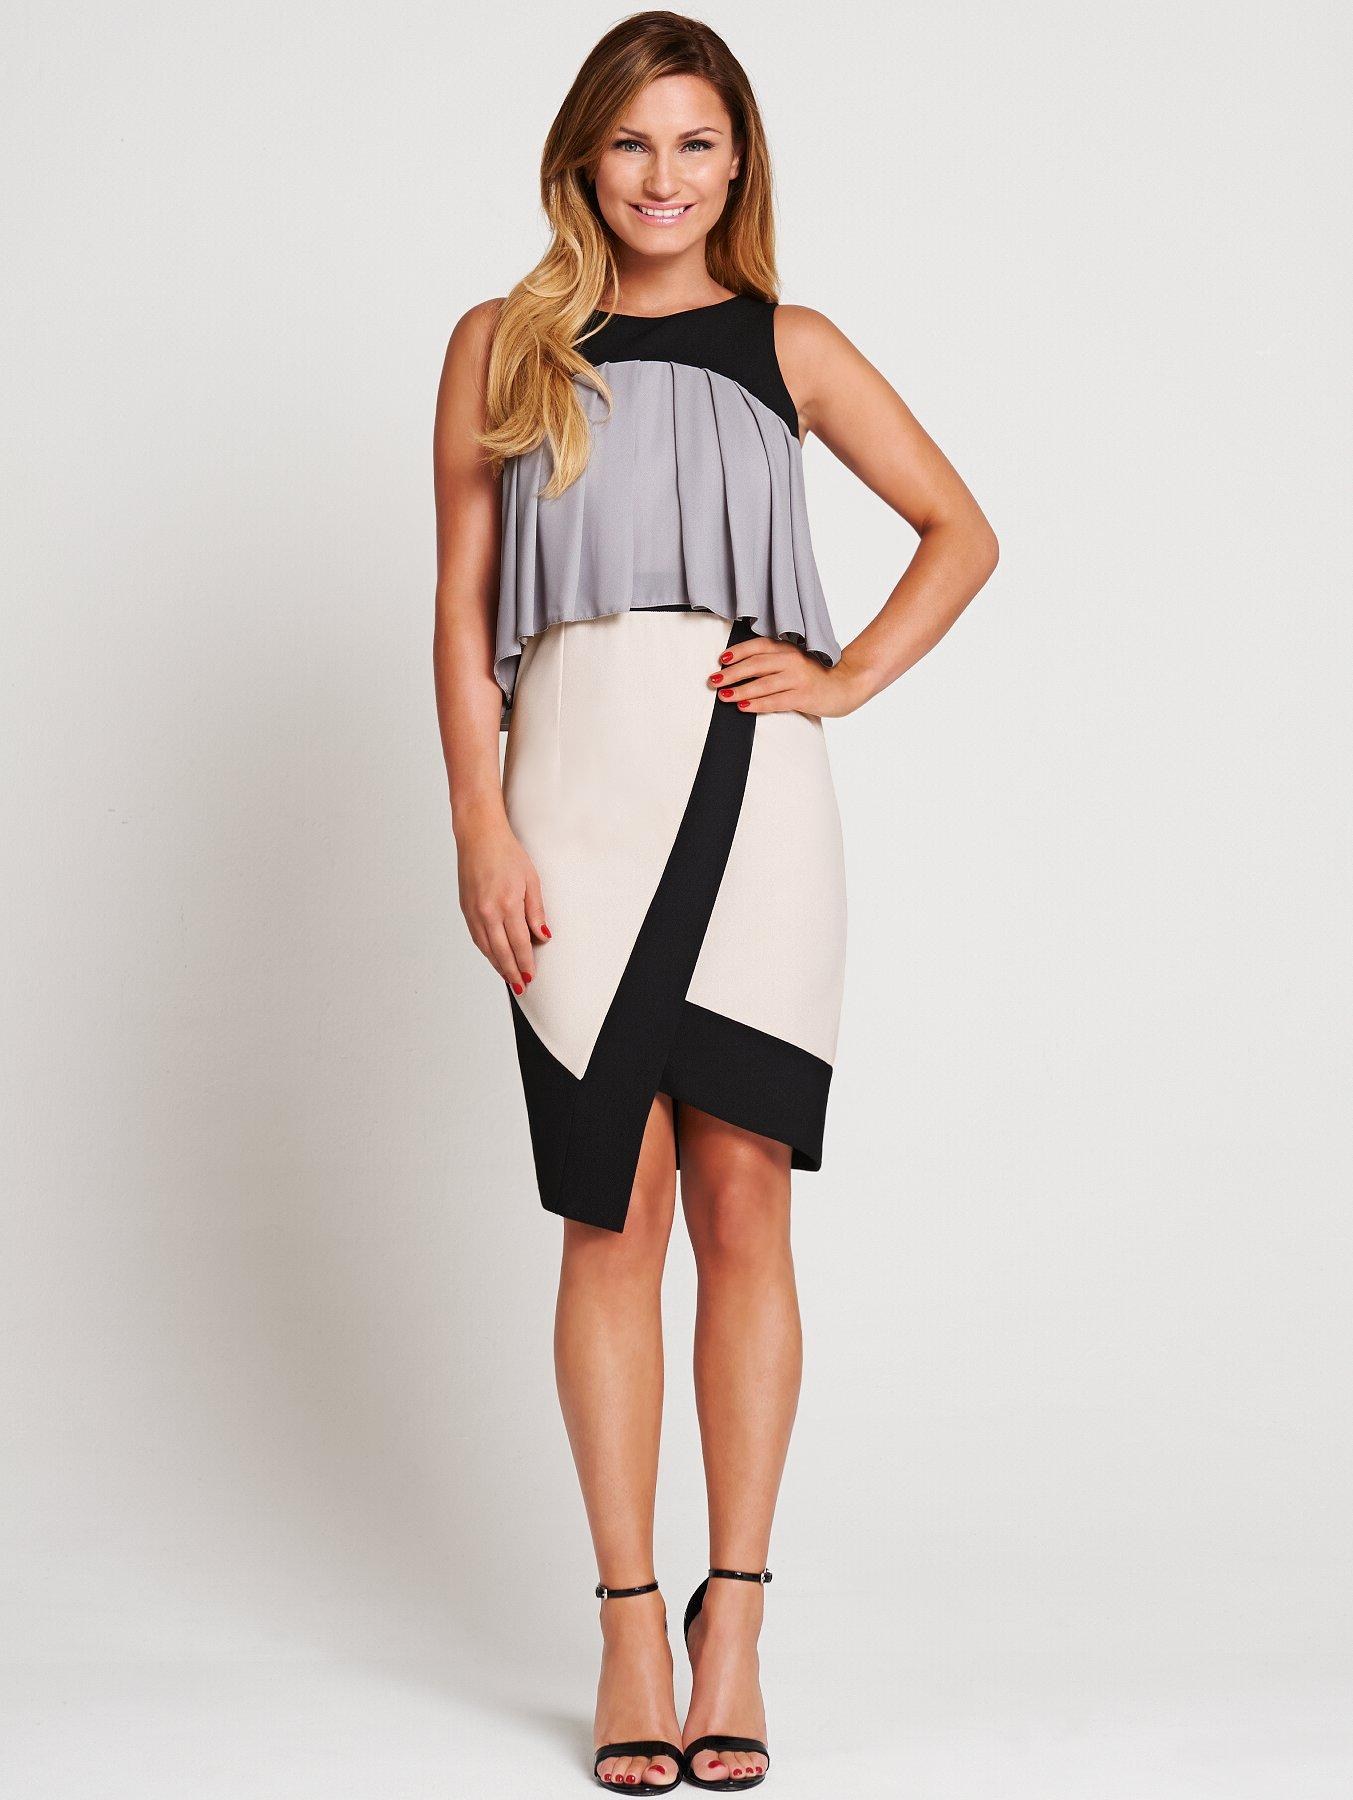 Samantha Faiers Frill Asymmetric Dress.